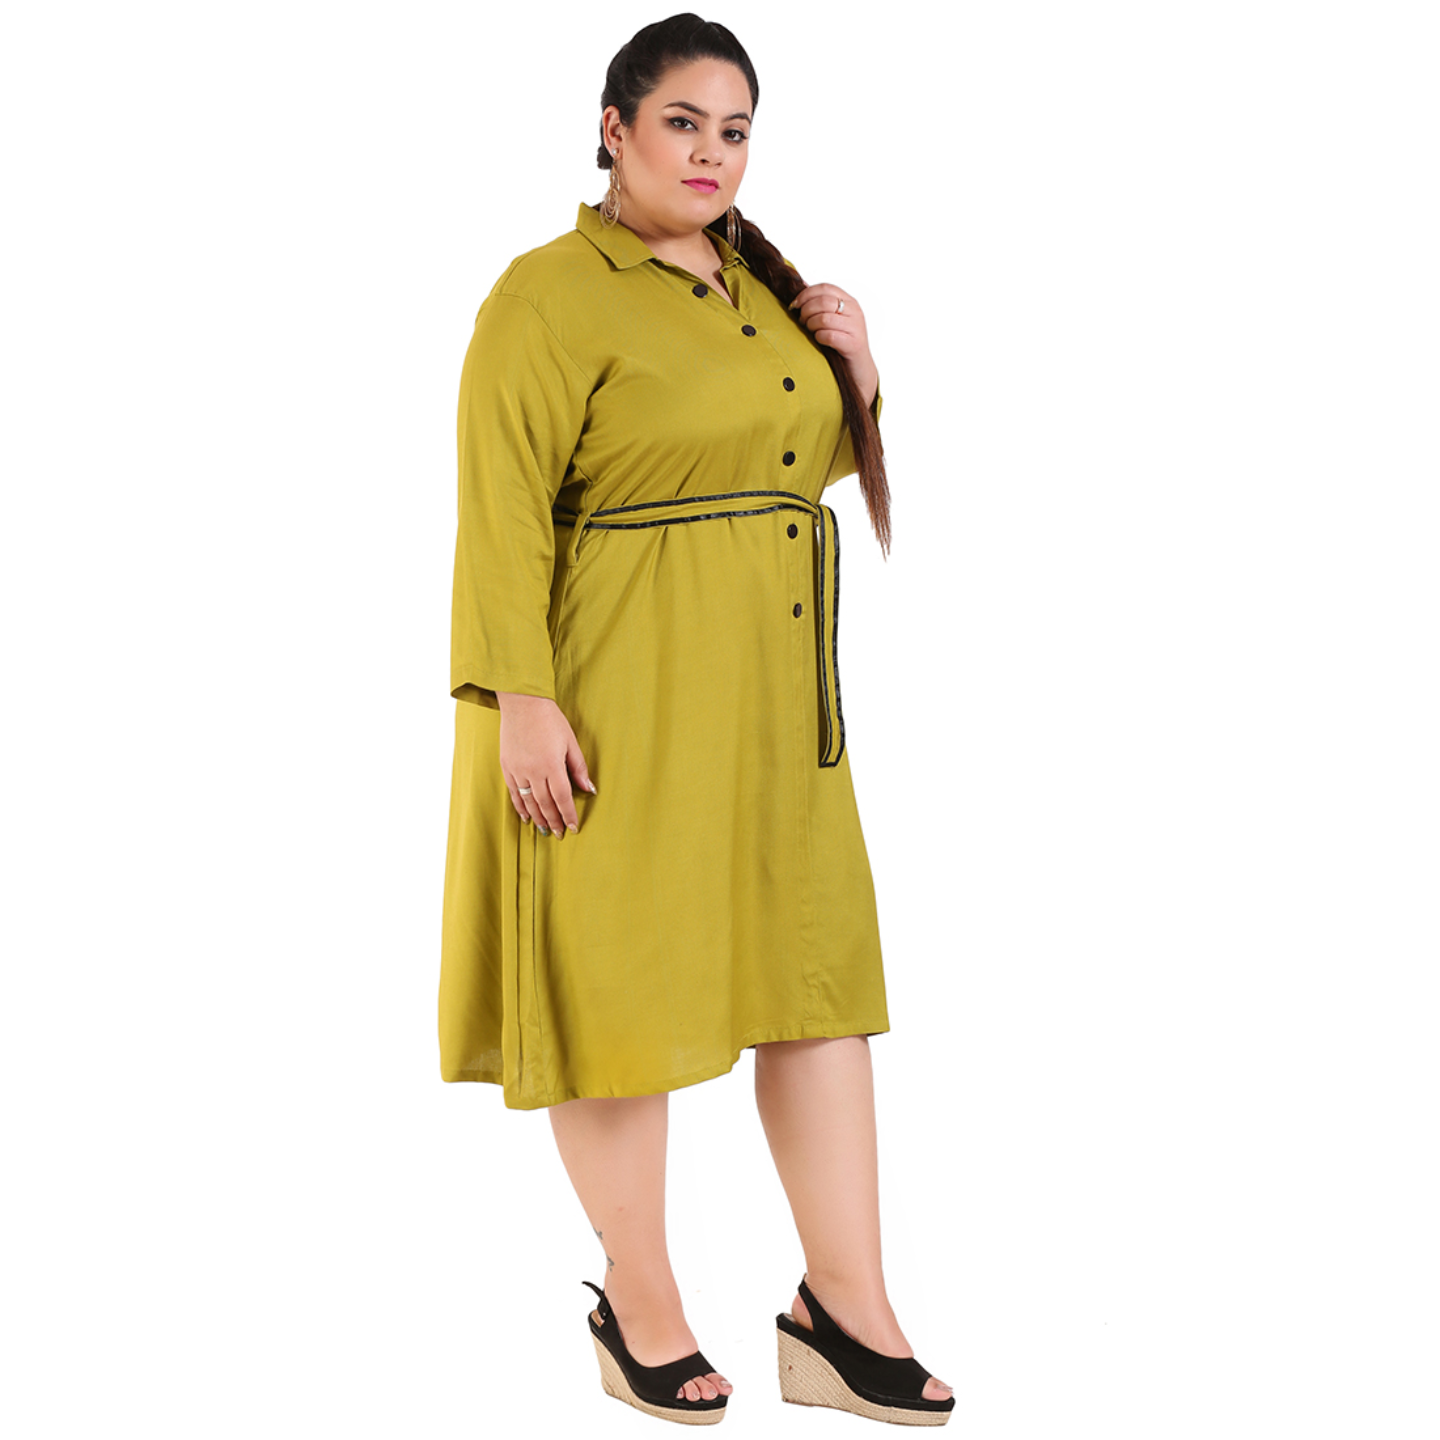 Green Colour Shirt Style Dress with Belt